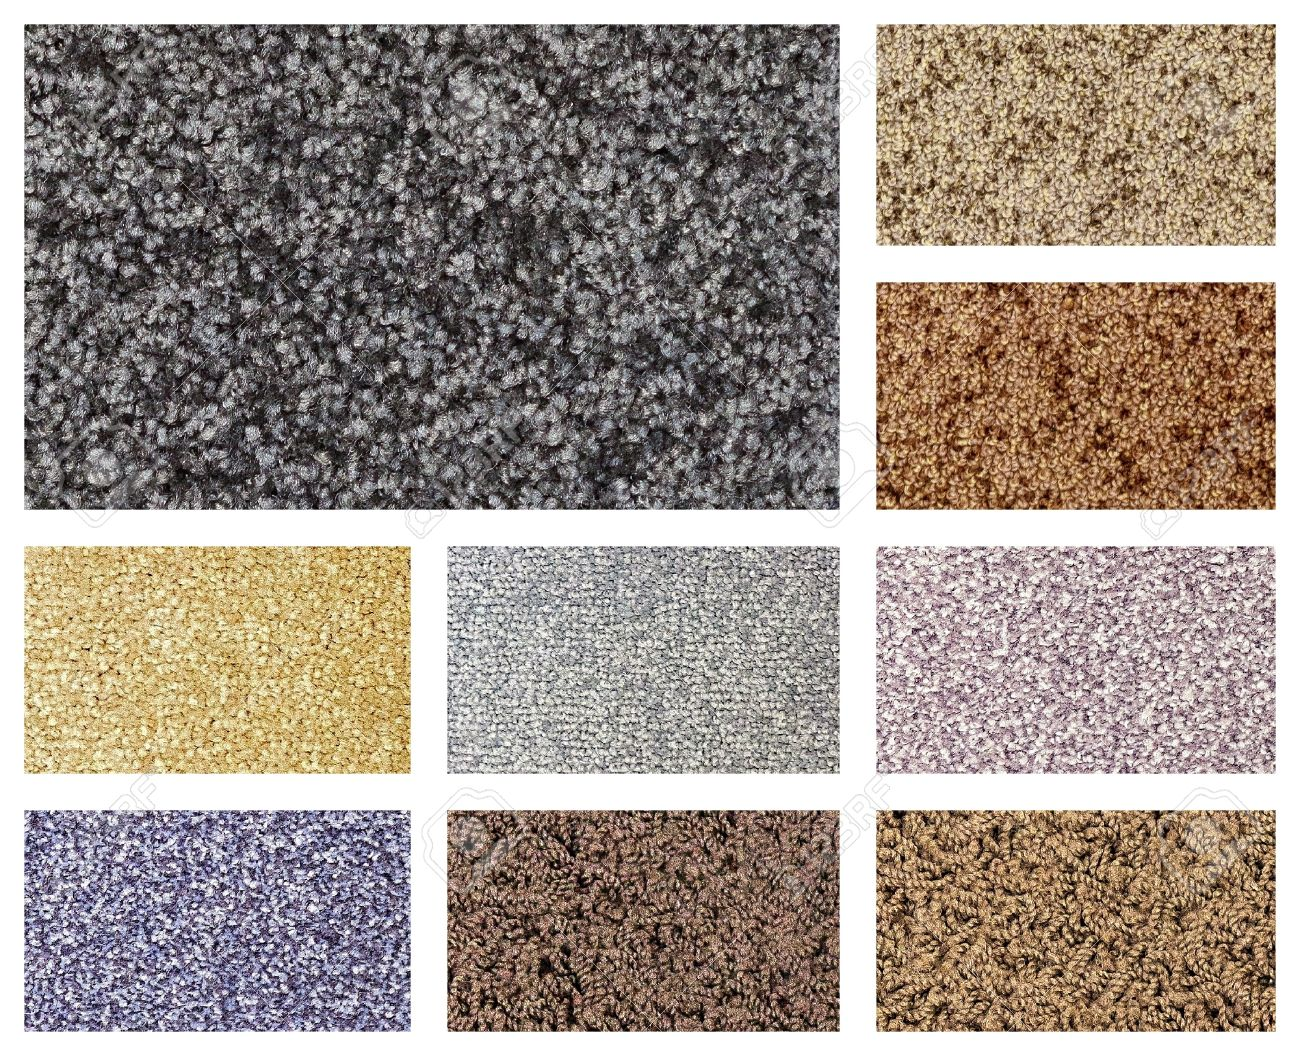 Types Of Floor Coverings Color Variations Of Different Types Of Carpets And Floor Coverings .